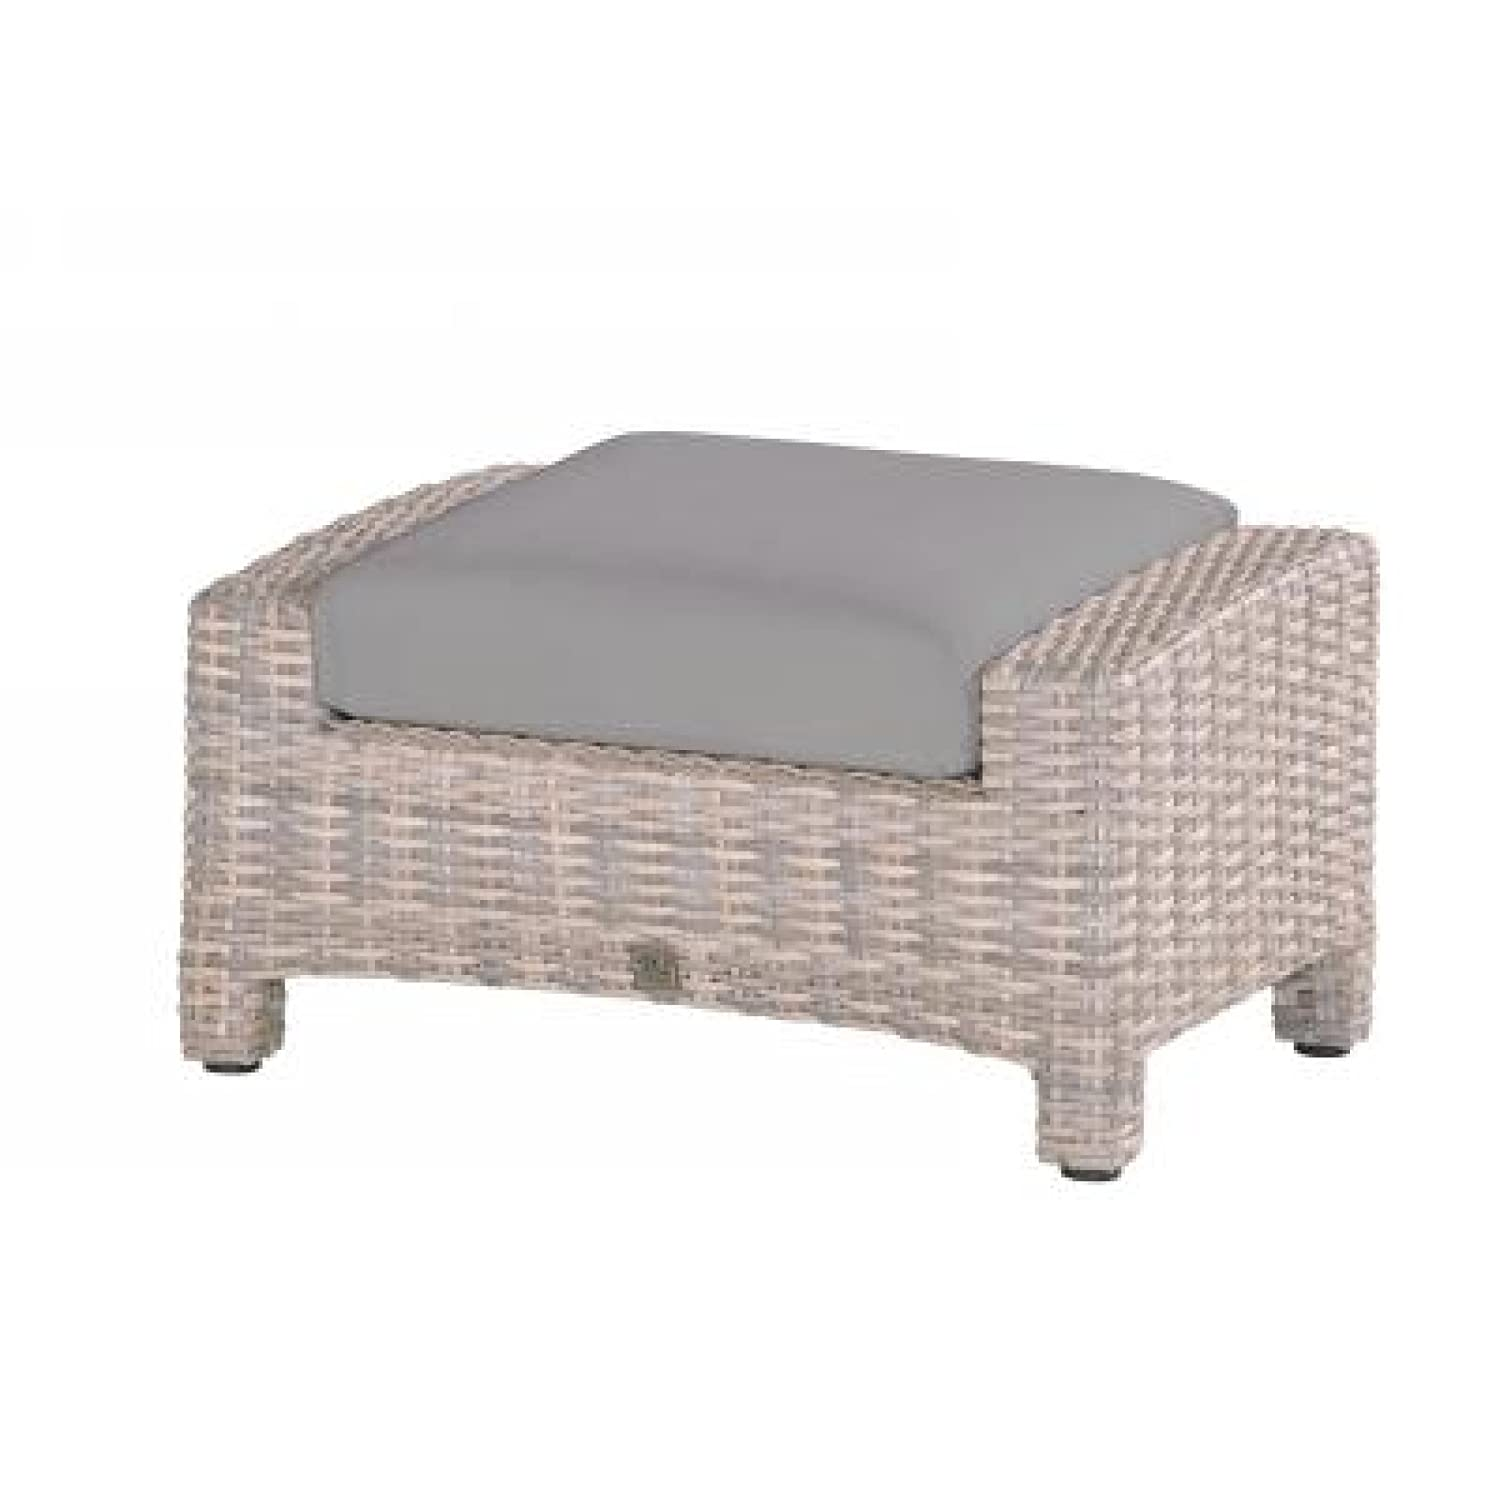 4Seasons Outdoor Fußhocker Mambo inkl Kissen Polyrattan lagun 212197